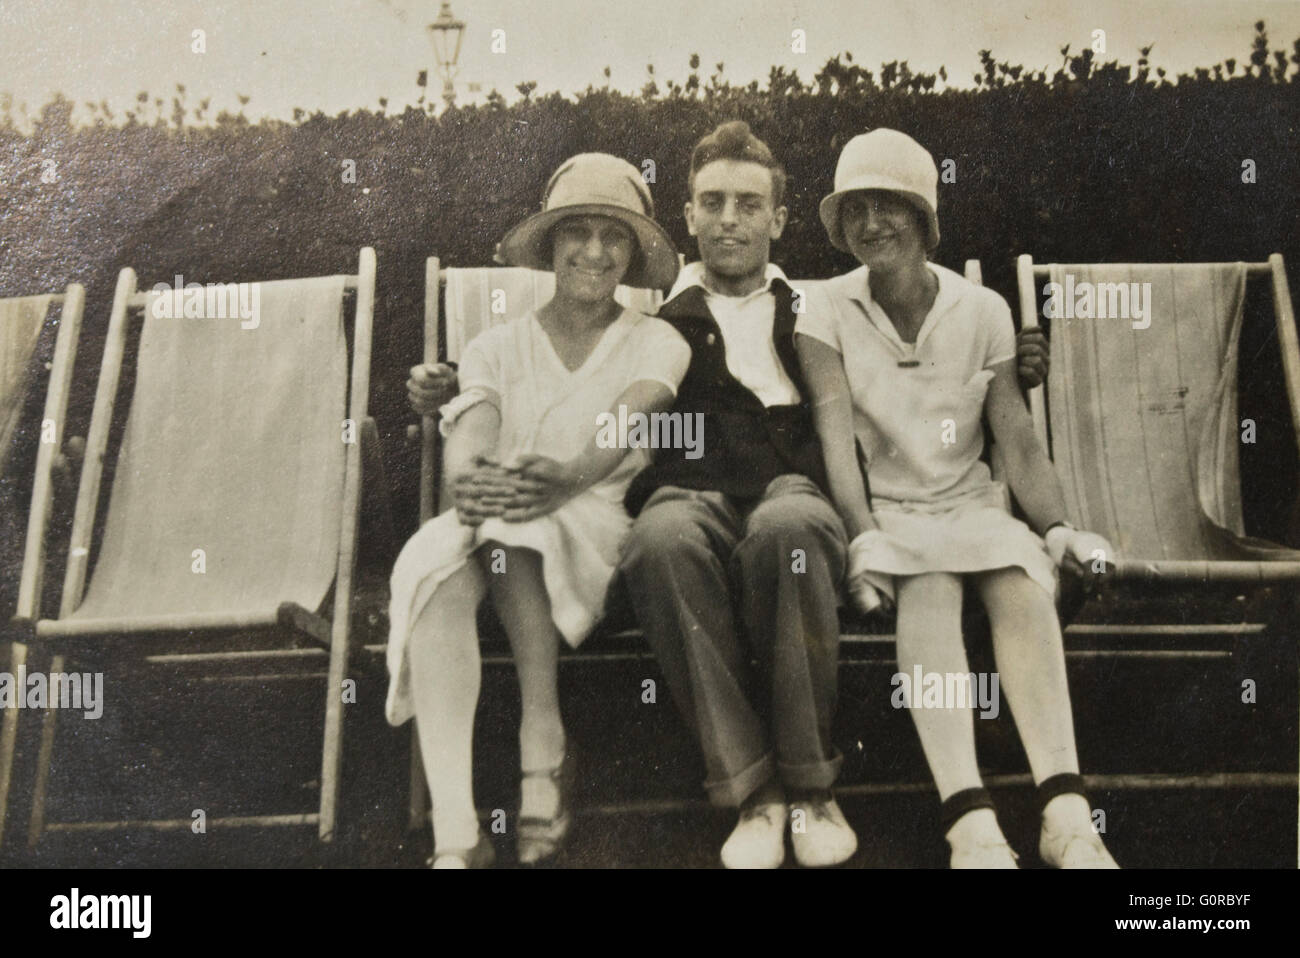 Historical Black and White Photograph Man and Two Woman sitting on deckchairs in summer - Stock Image